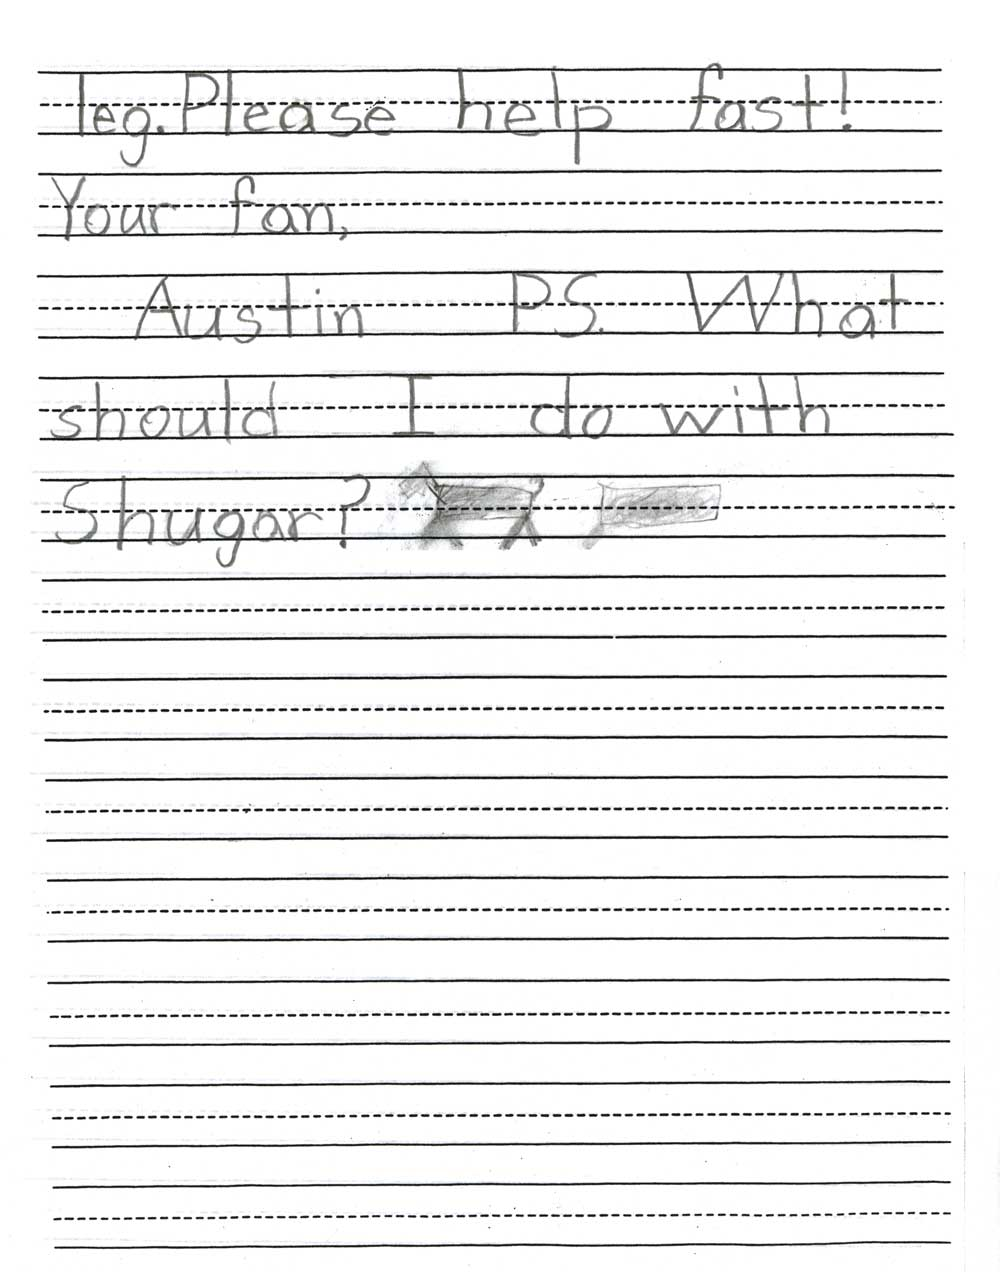 Austin and Sugar - page 2